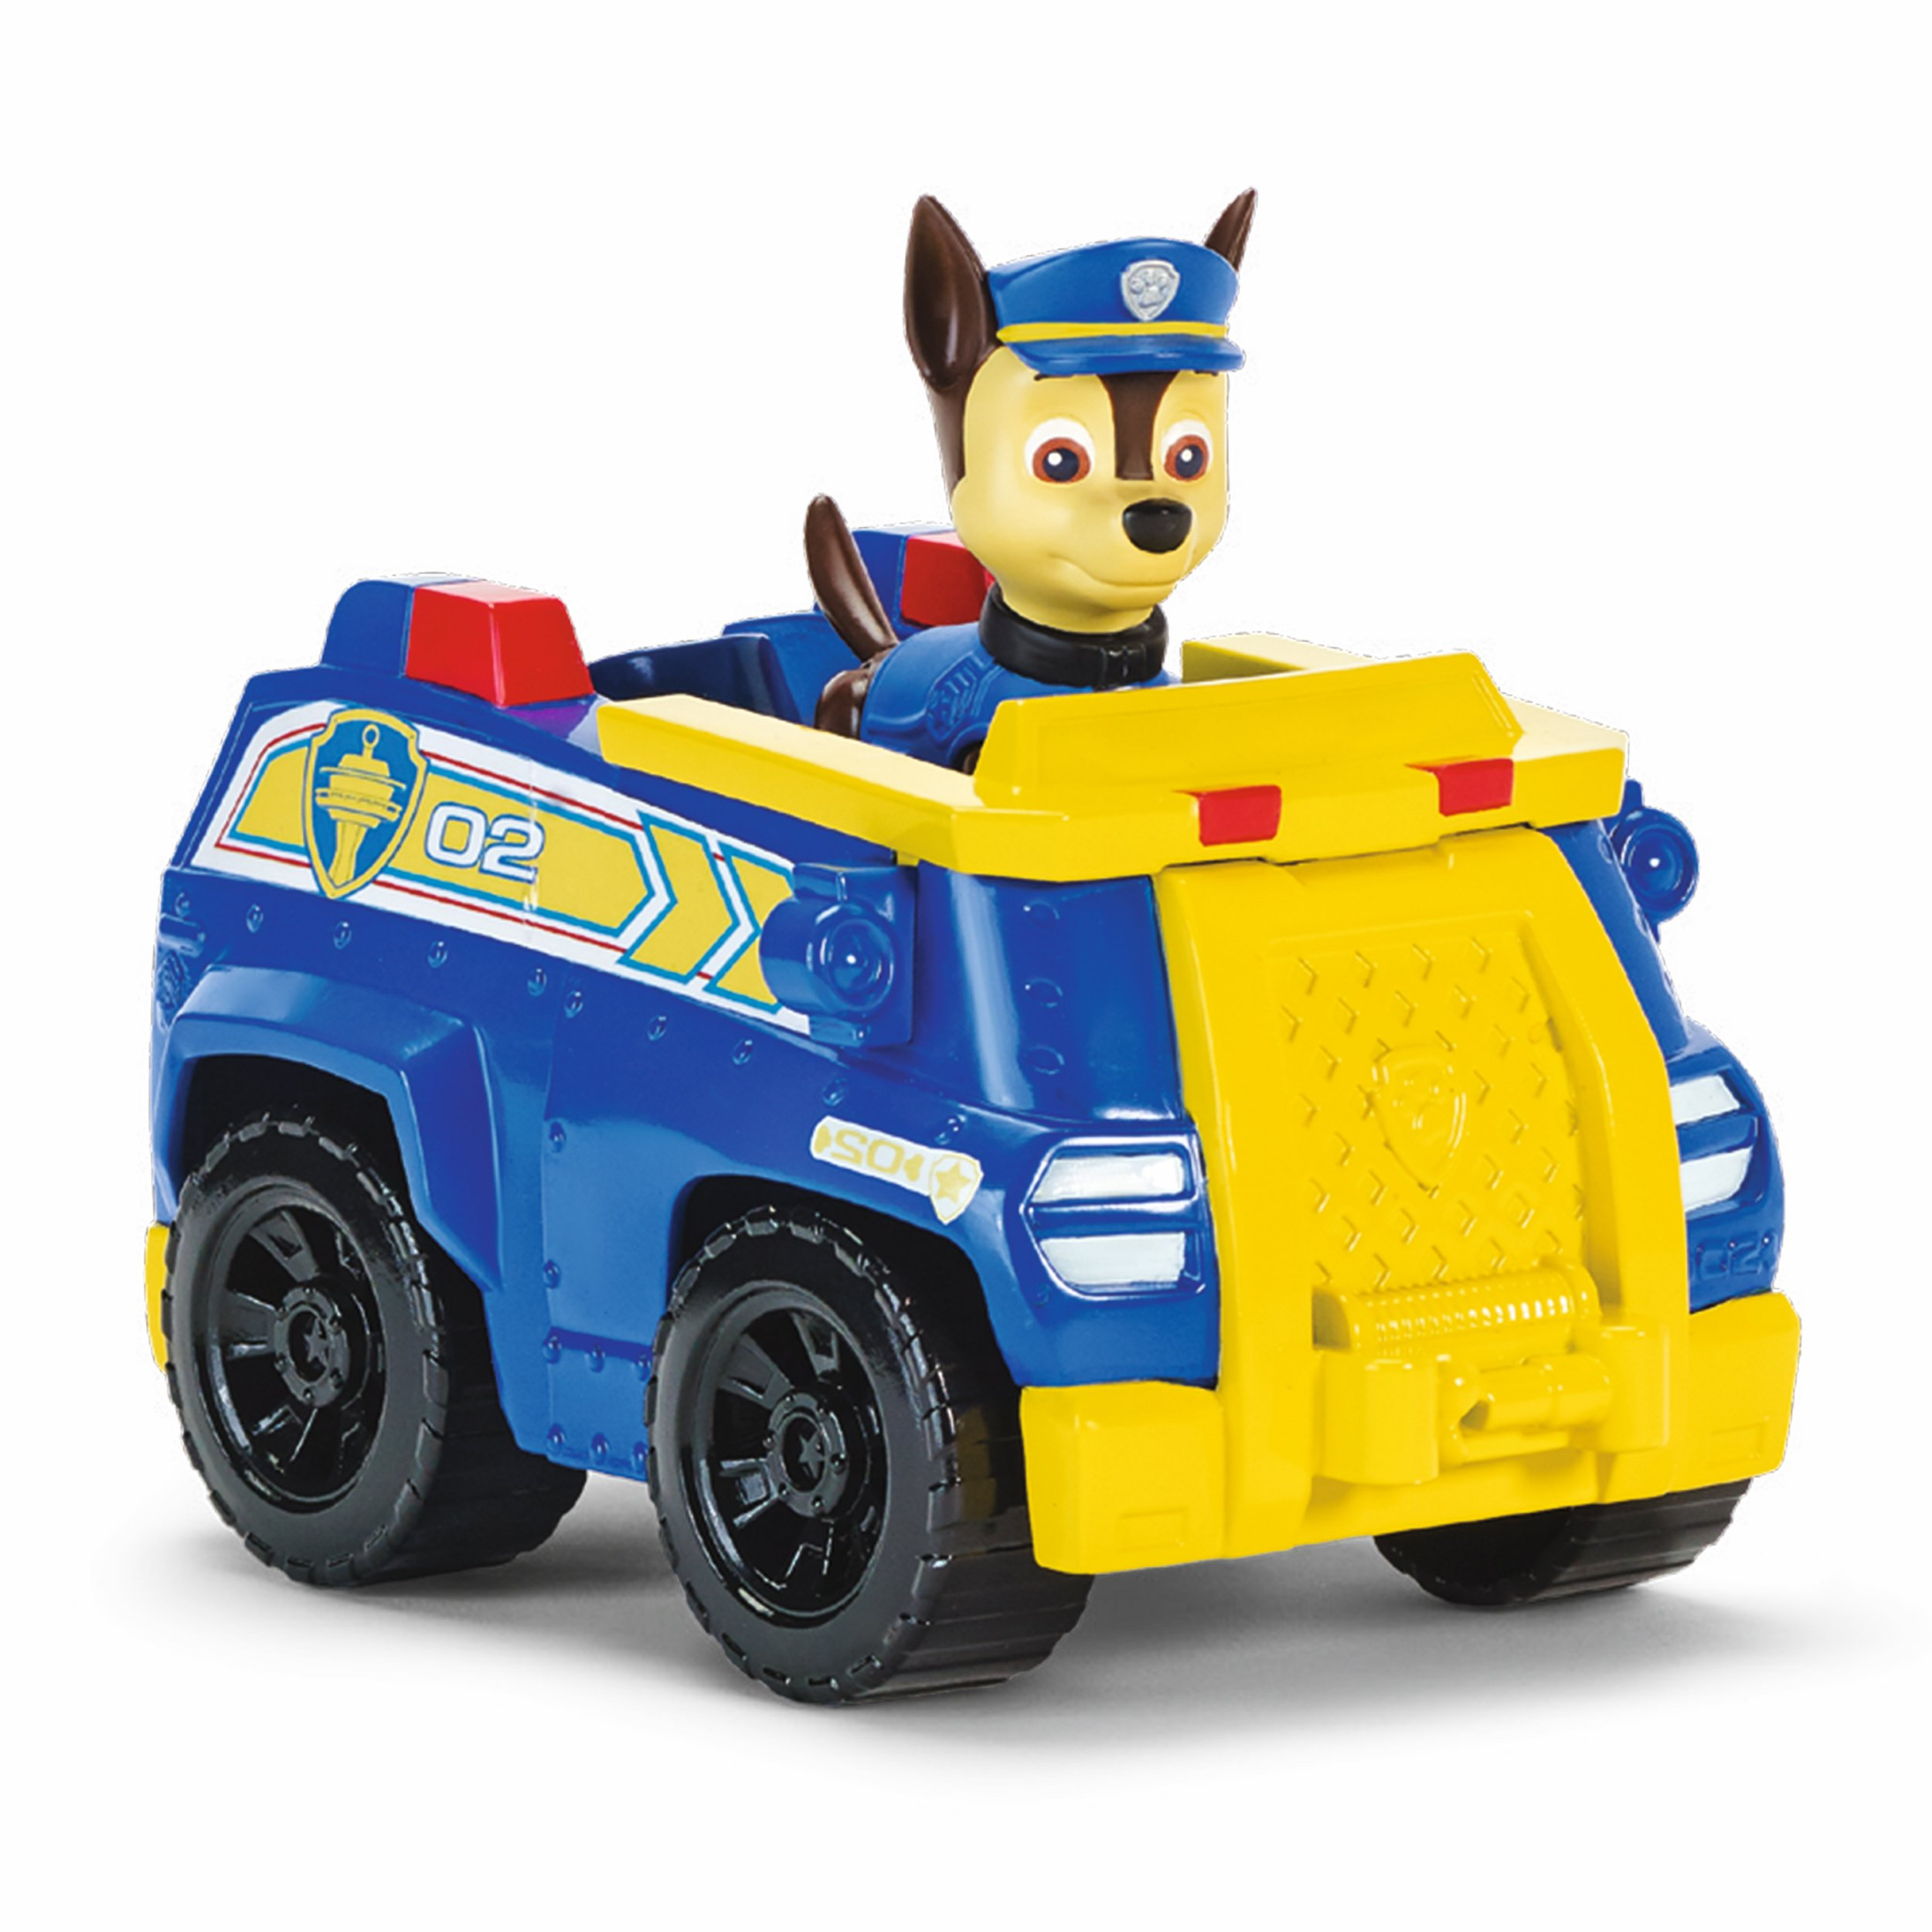 PAW Patrol My Size Lookout Tower with Exclusive Vehicle, Rotating Periscope & Lights & Sounds by Nickelodeon (Image #8)